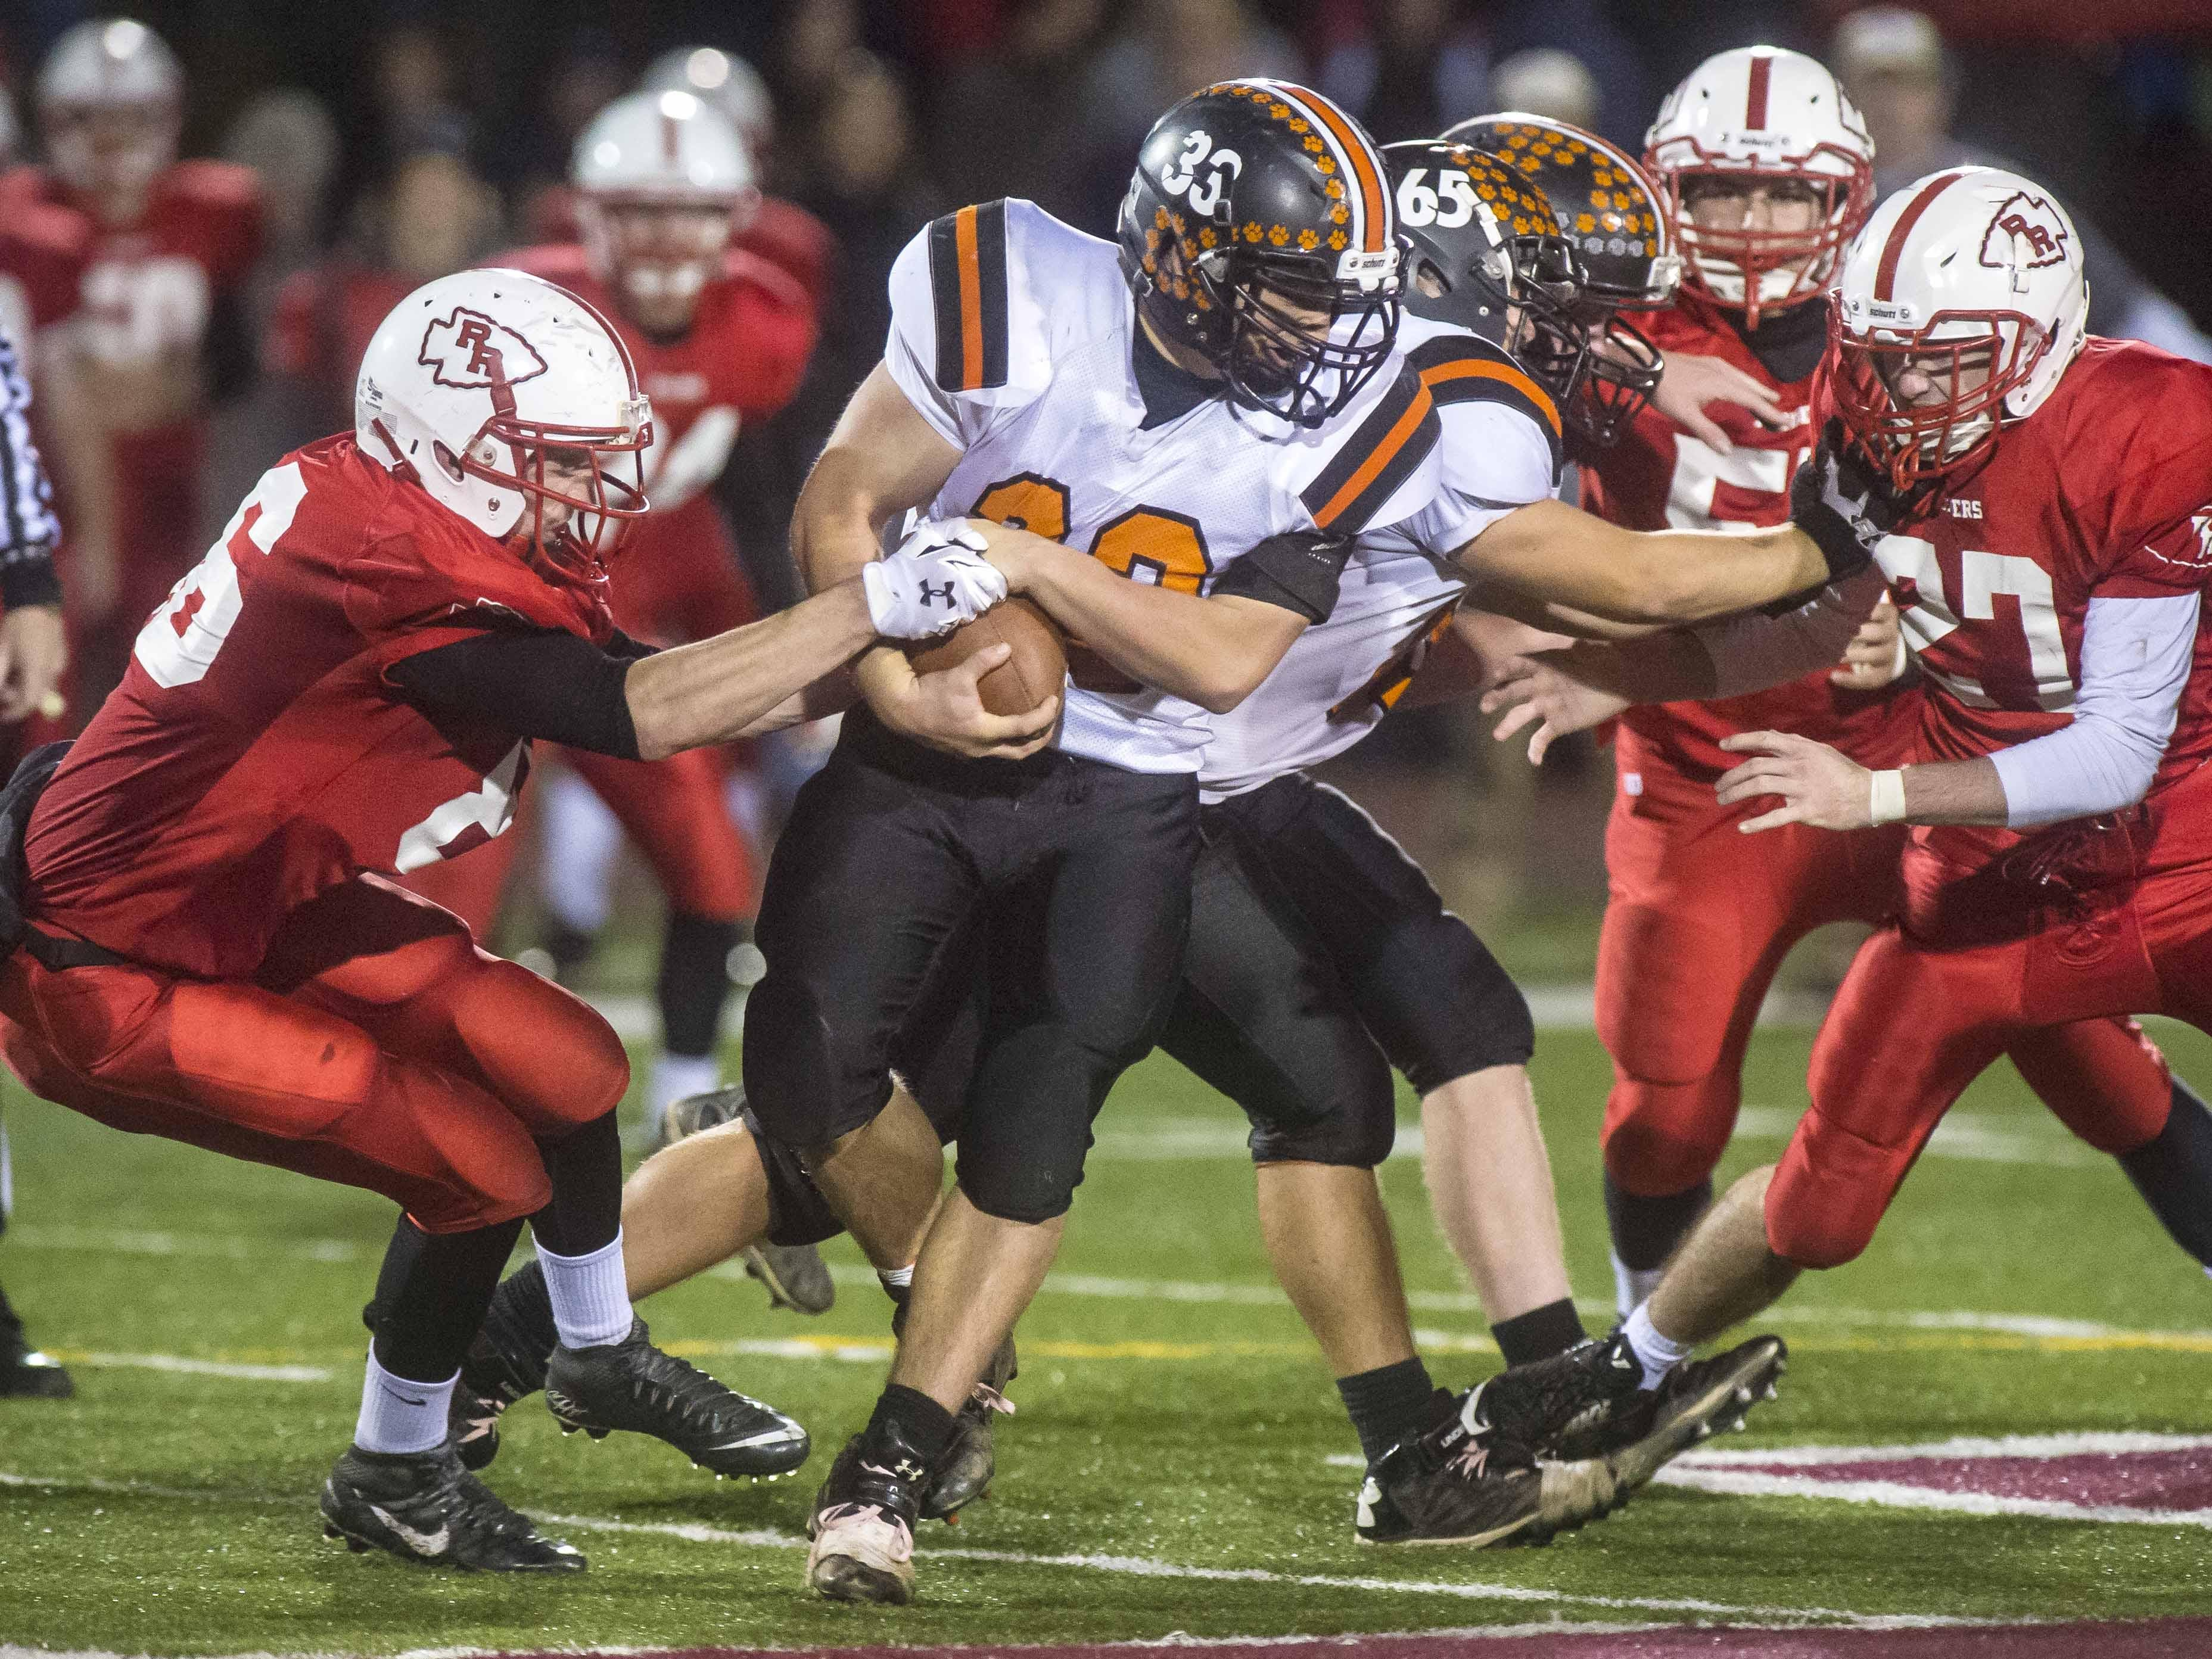 Rutland's Austin O'Gorman, left, tries to strip the ball from Middlebury's Cortland Fischer in the D1 state football championship in Rutland on Saturday, November 7, 2015.